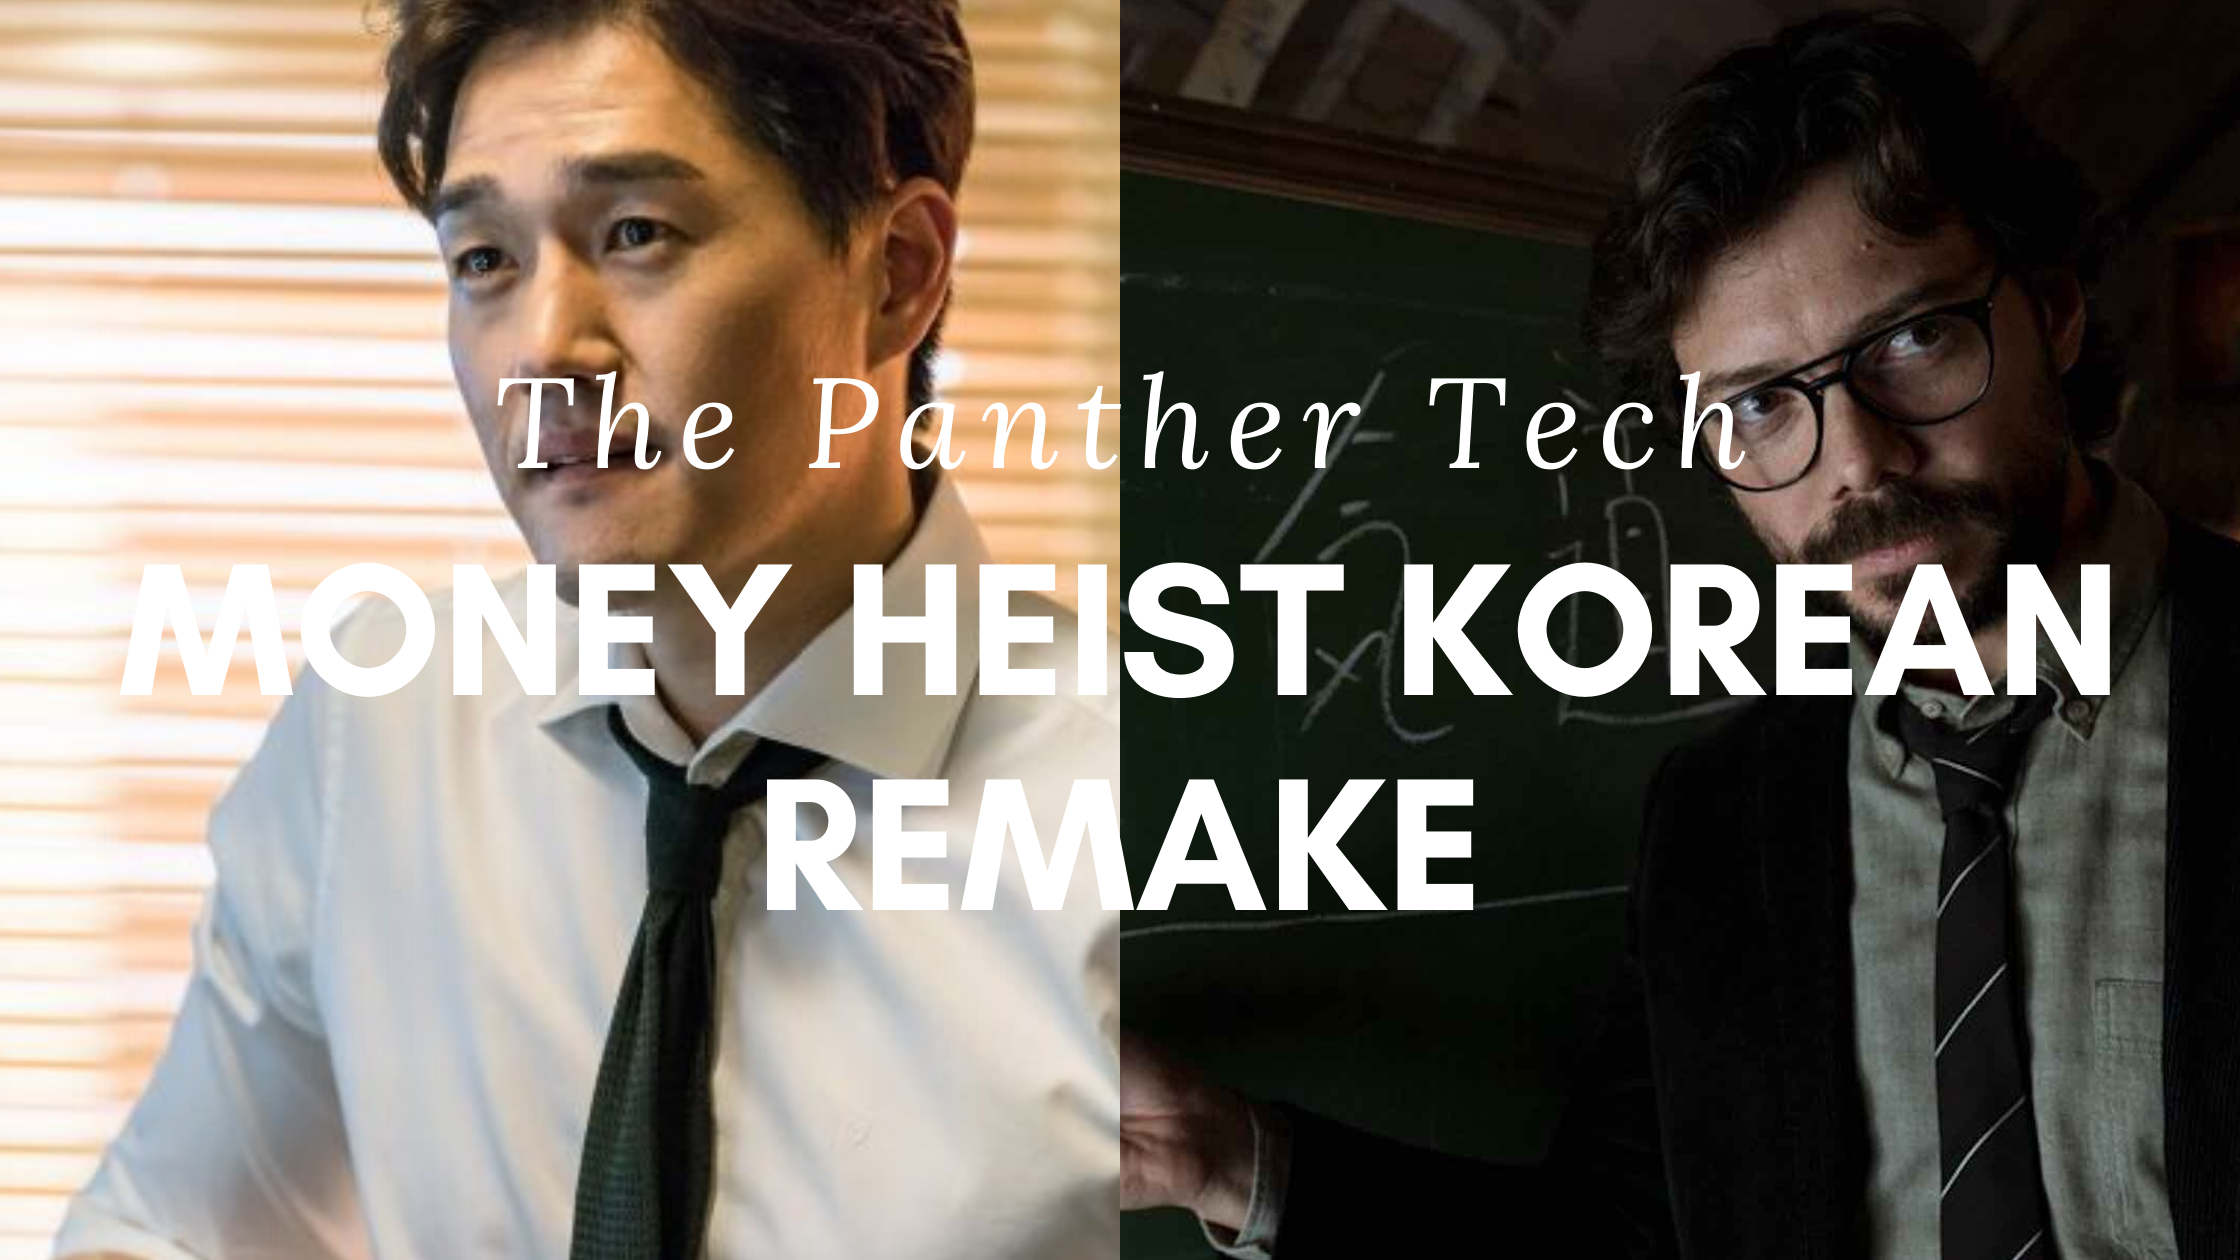 These Are Merely Suggestions For The Upcoming Money Heist Korean Remake Not The Actual Cast Of The Series Here Are The Options T It Cast English Drama Korean